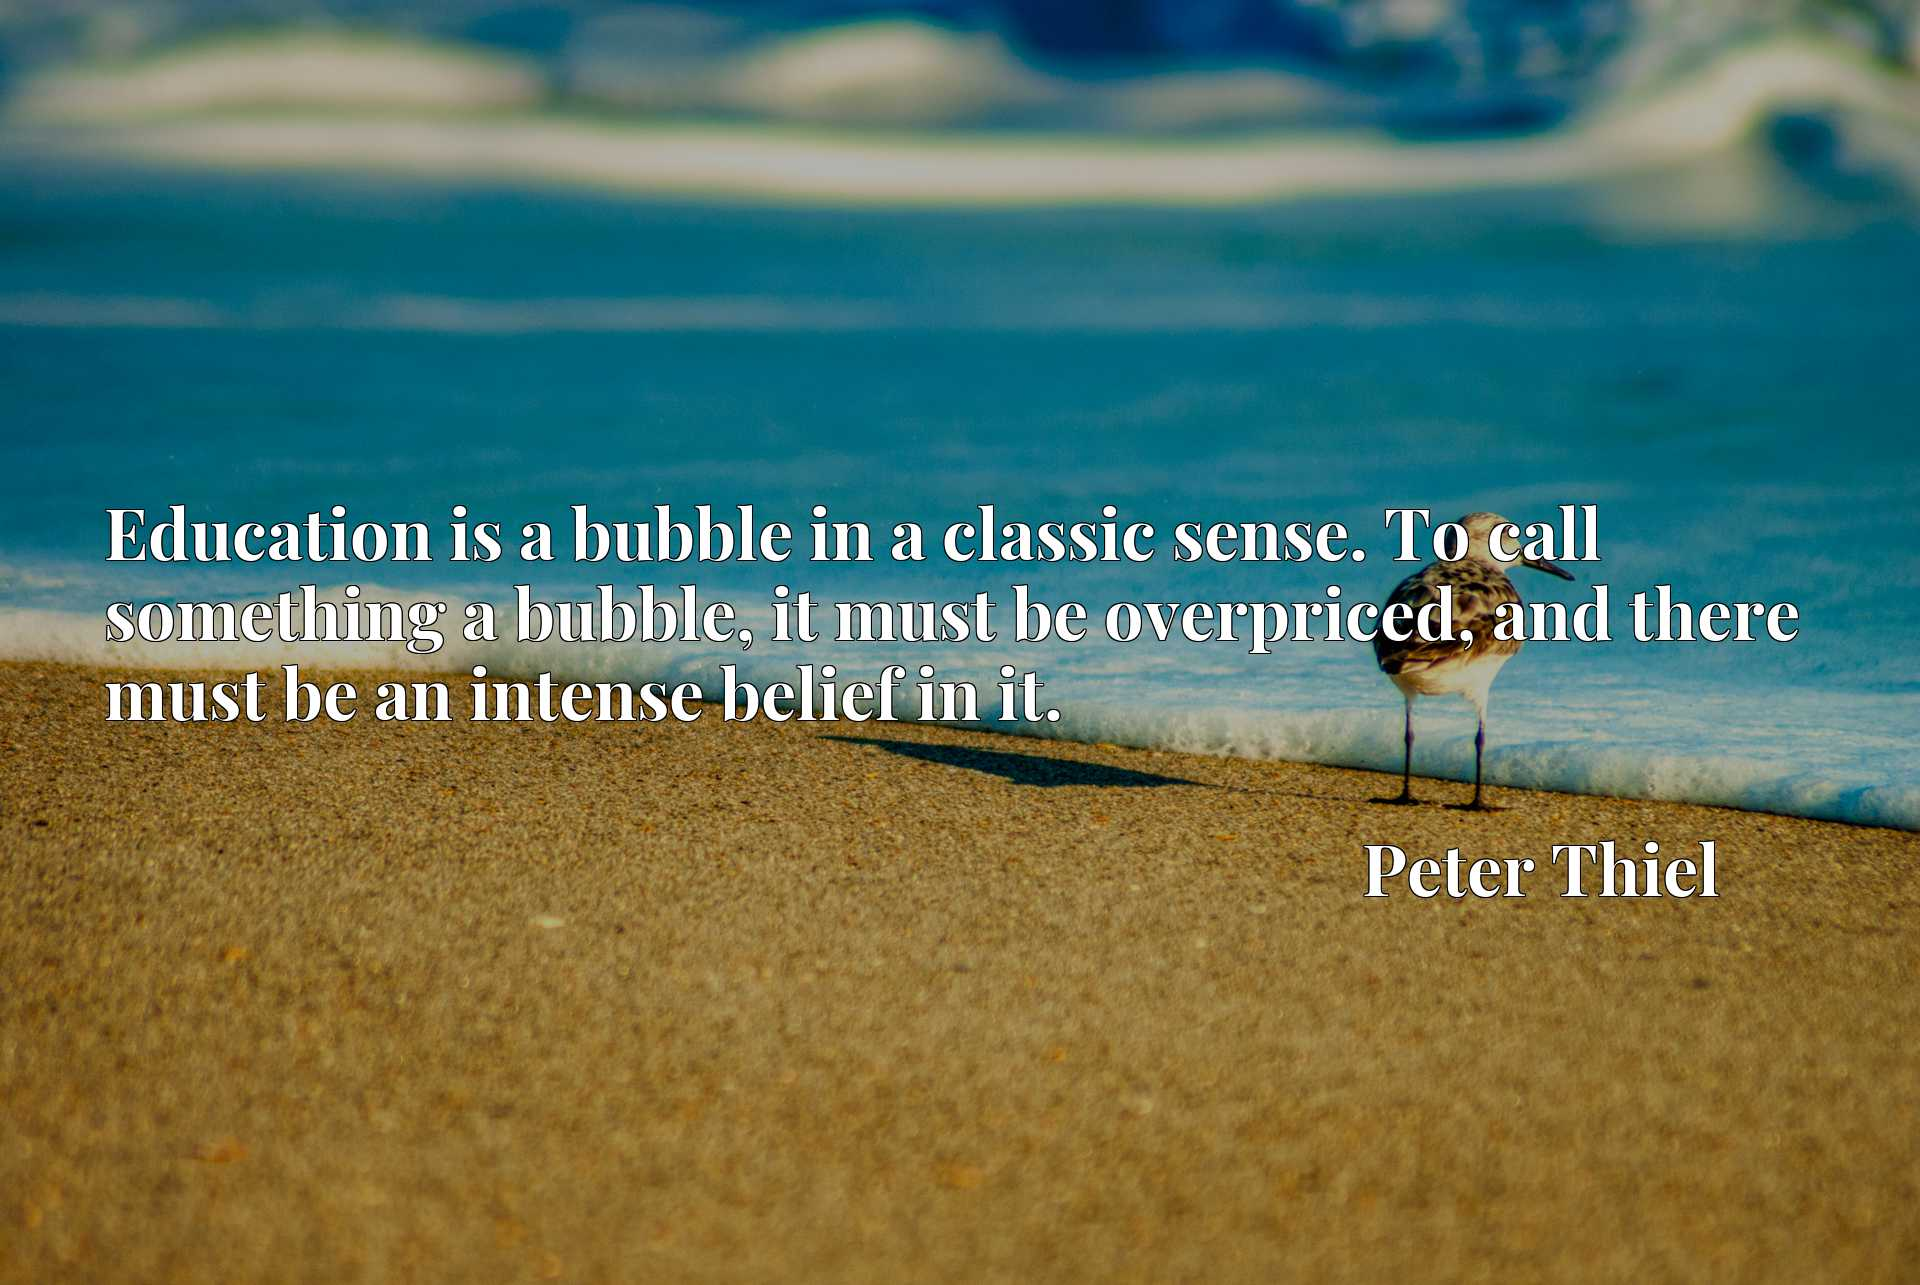 Education is a bubble in a classic sense. To call something a bubble, it must be overpriced, and there must be an intense belief in it.